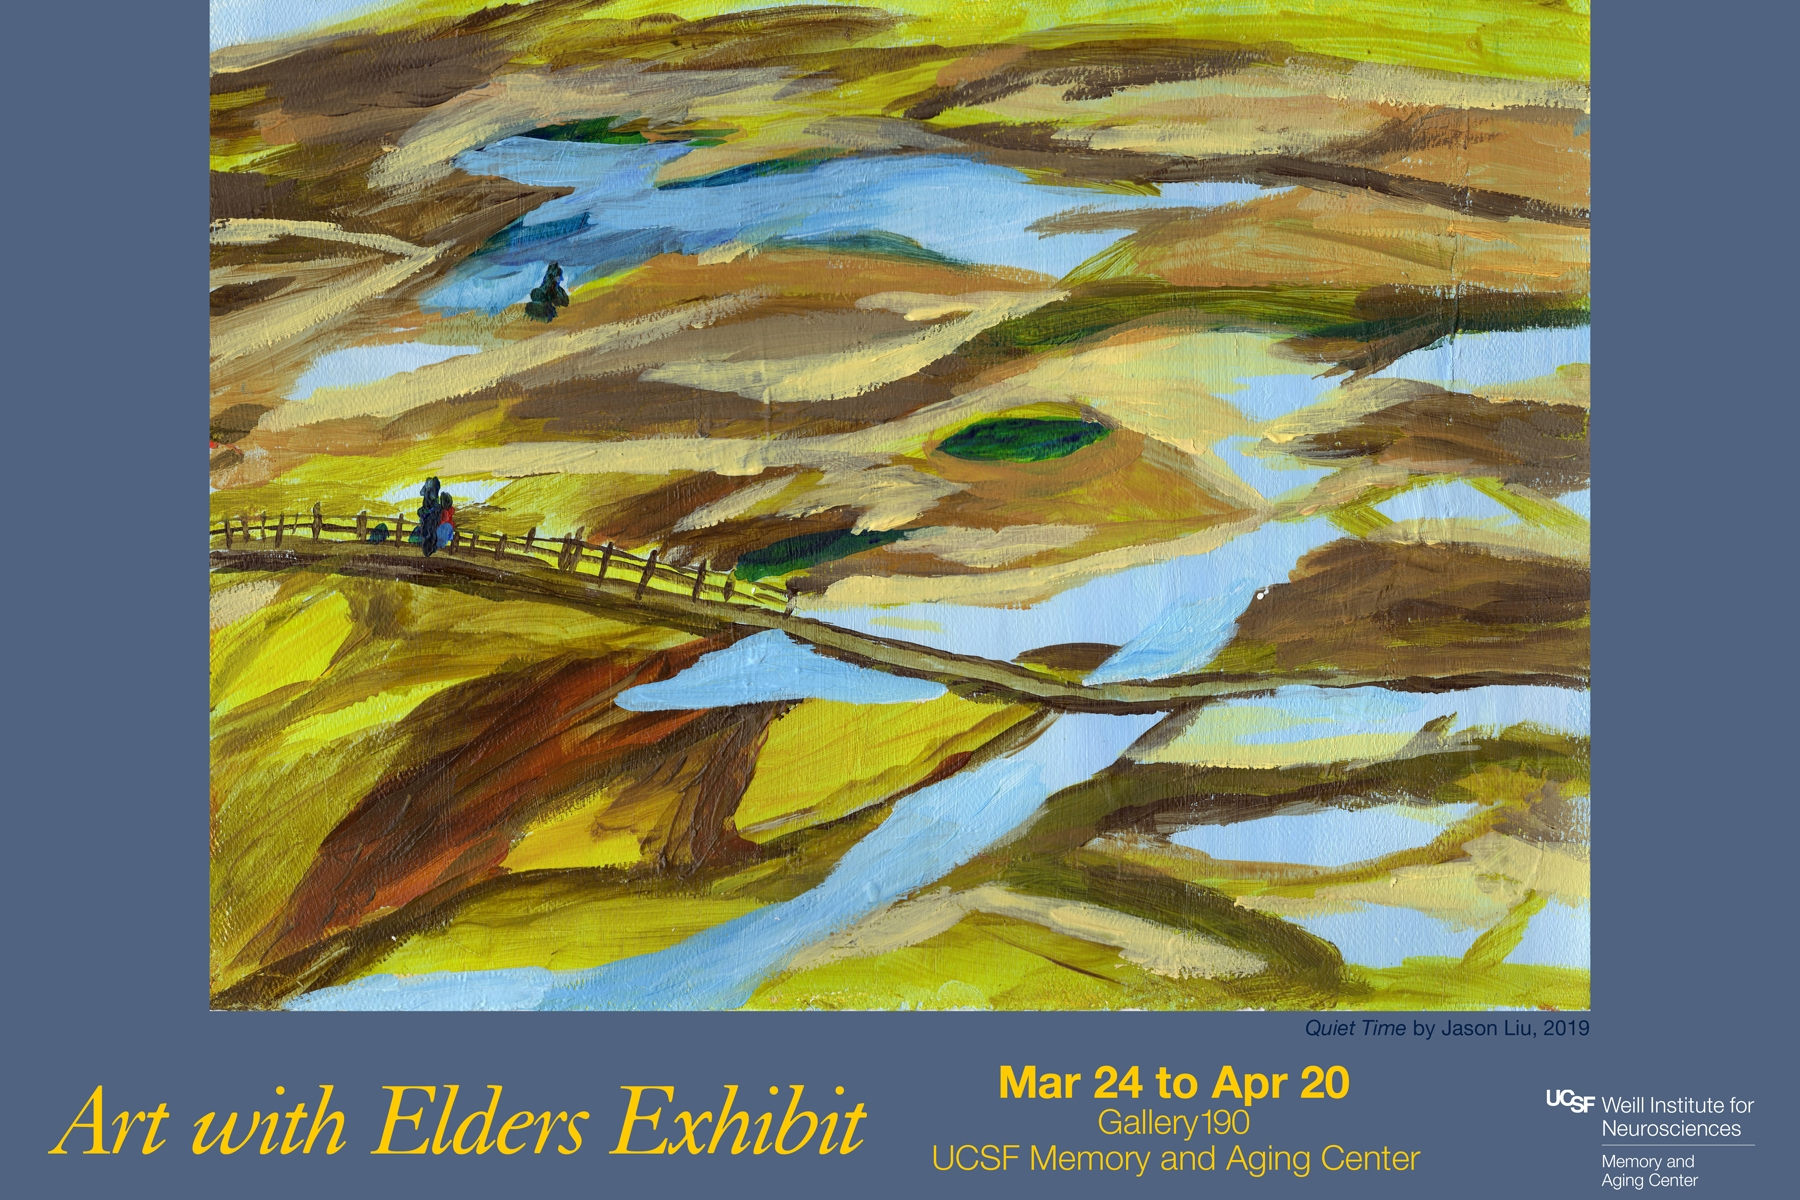 CANCELLED - UCSF Memory and Aging Center - Opening Mar 26